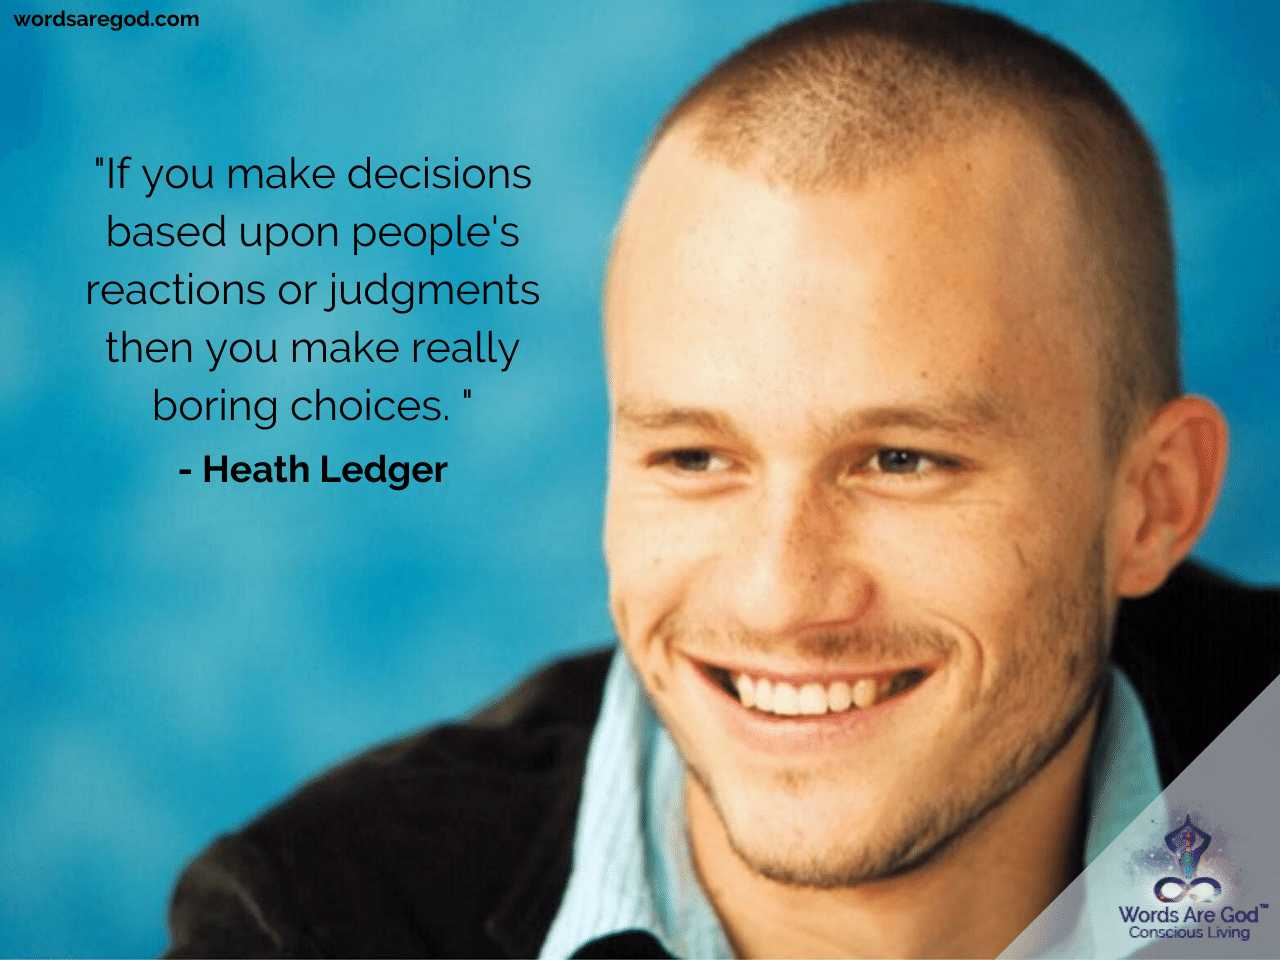 Heath Ledger Life Quotes